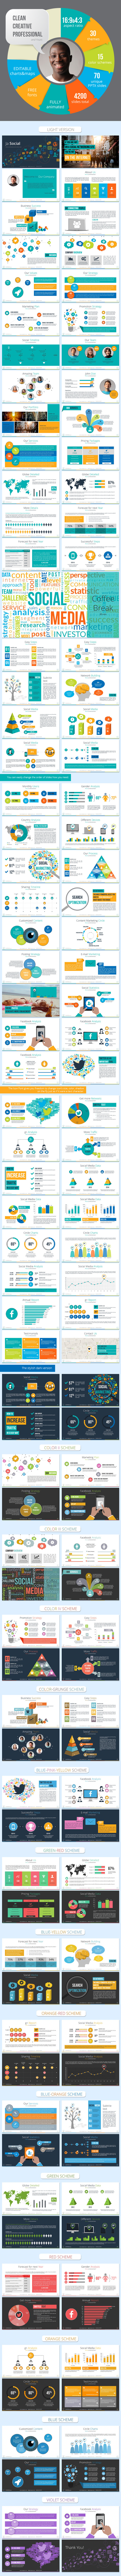 GraphicRiver Social Media Ja PowerPoint Presentation Template 9274859